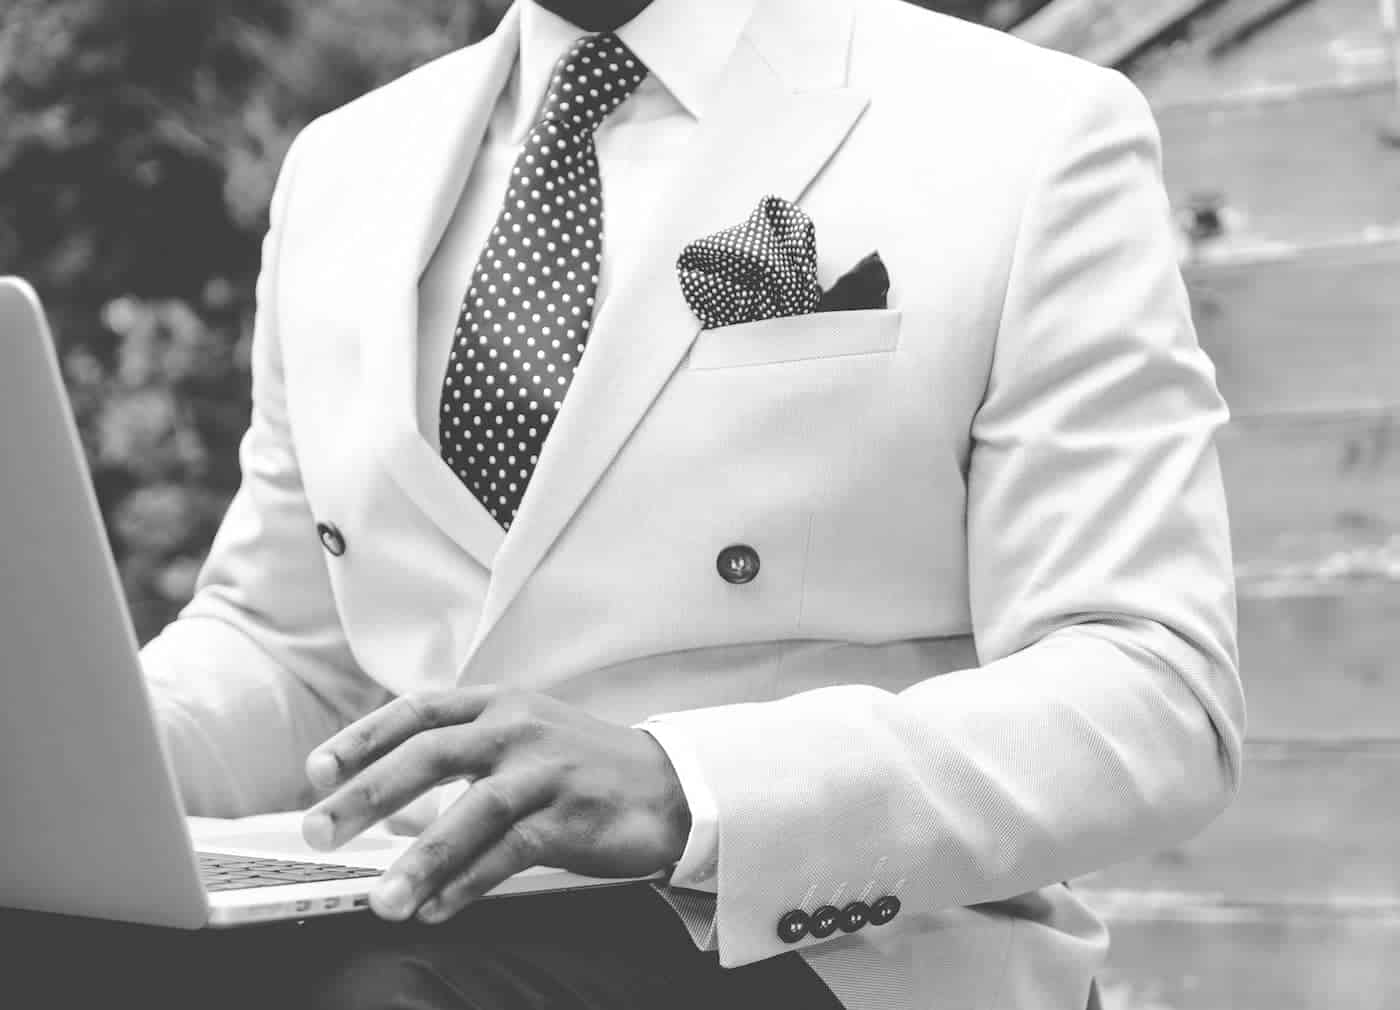 man in white suit working on his laptop